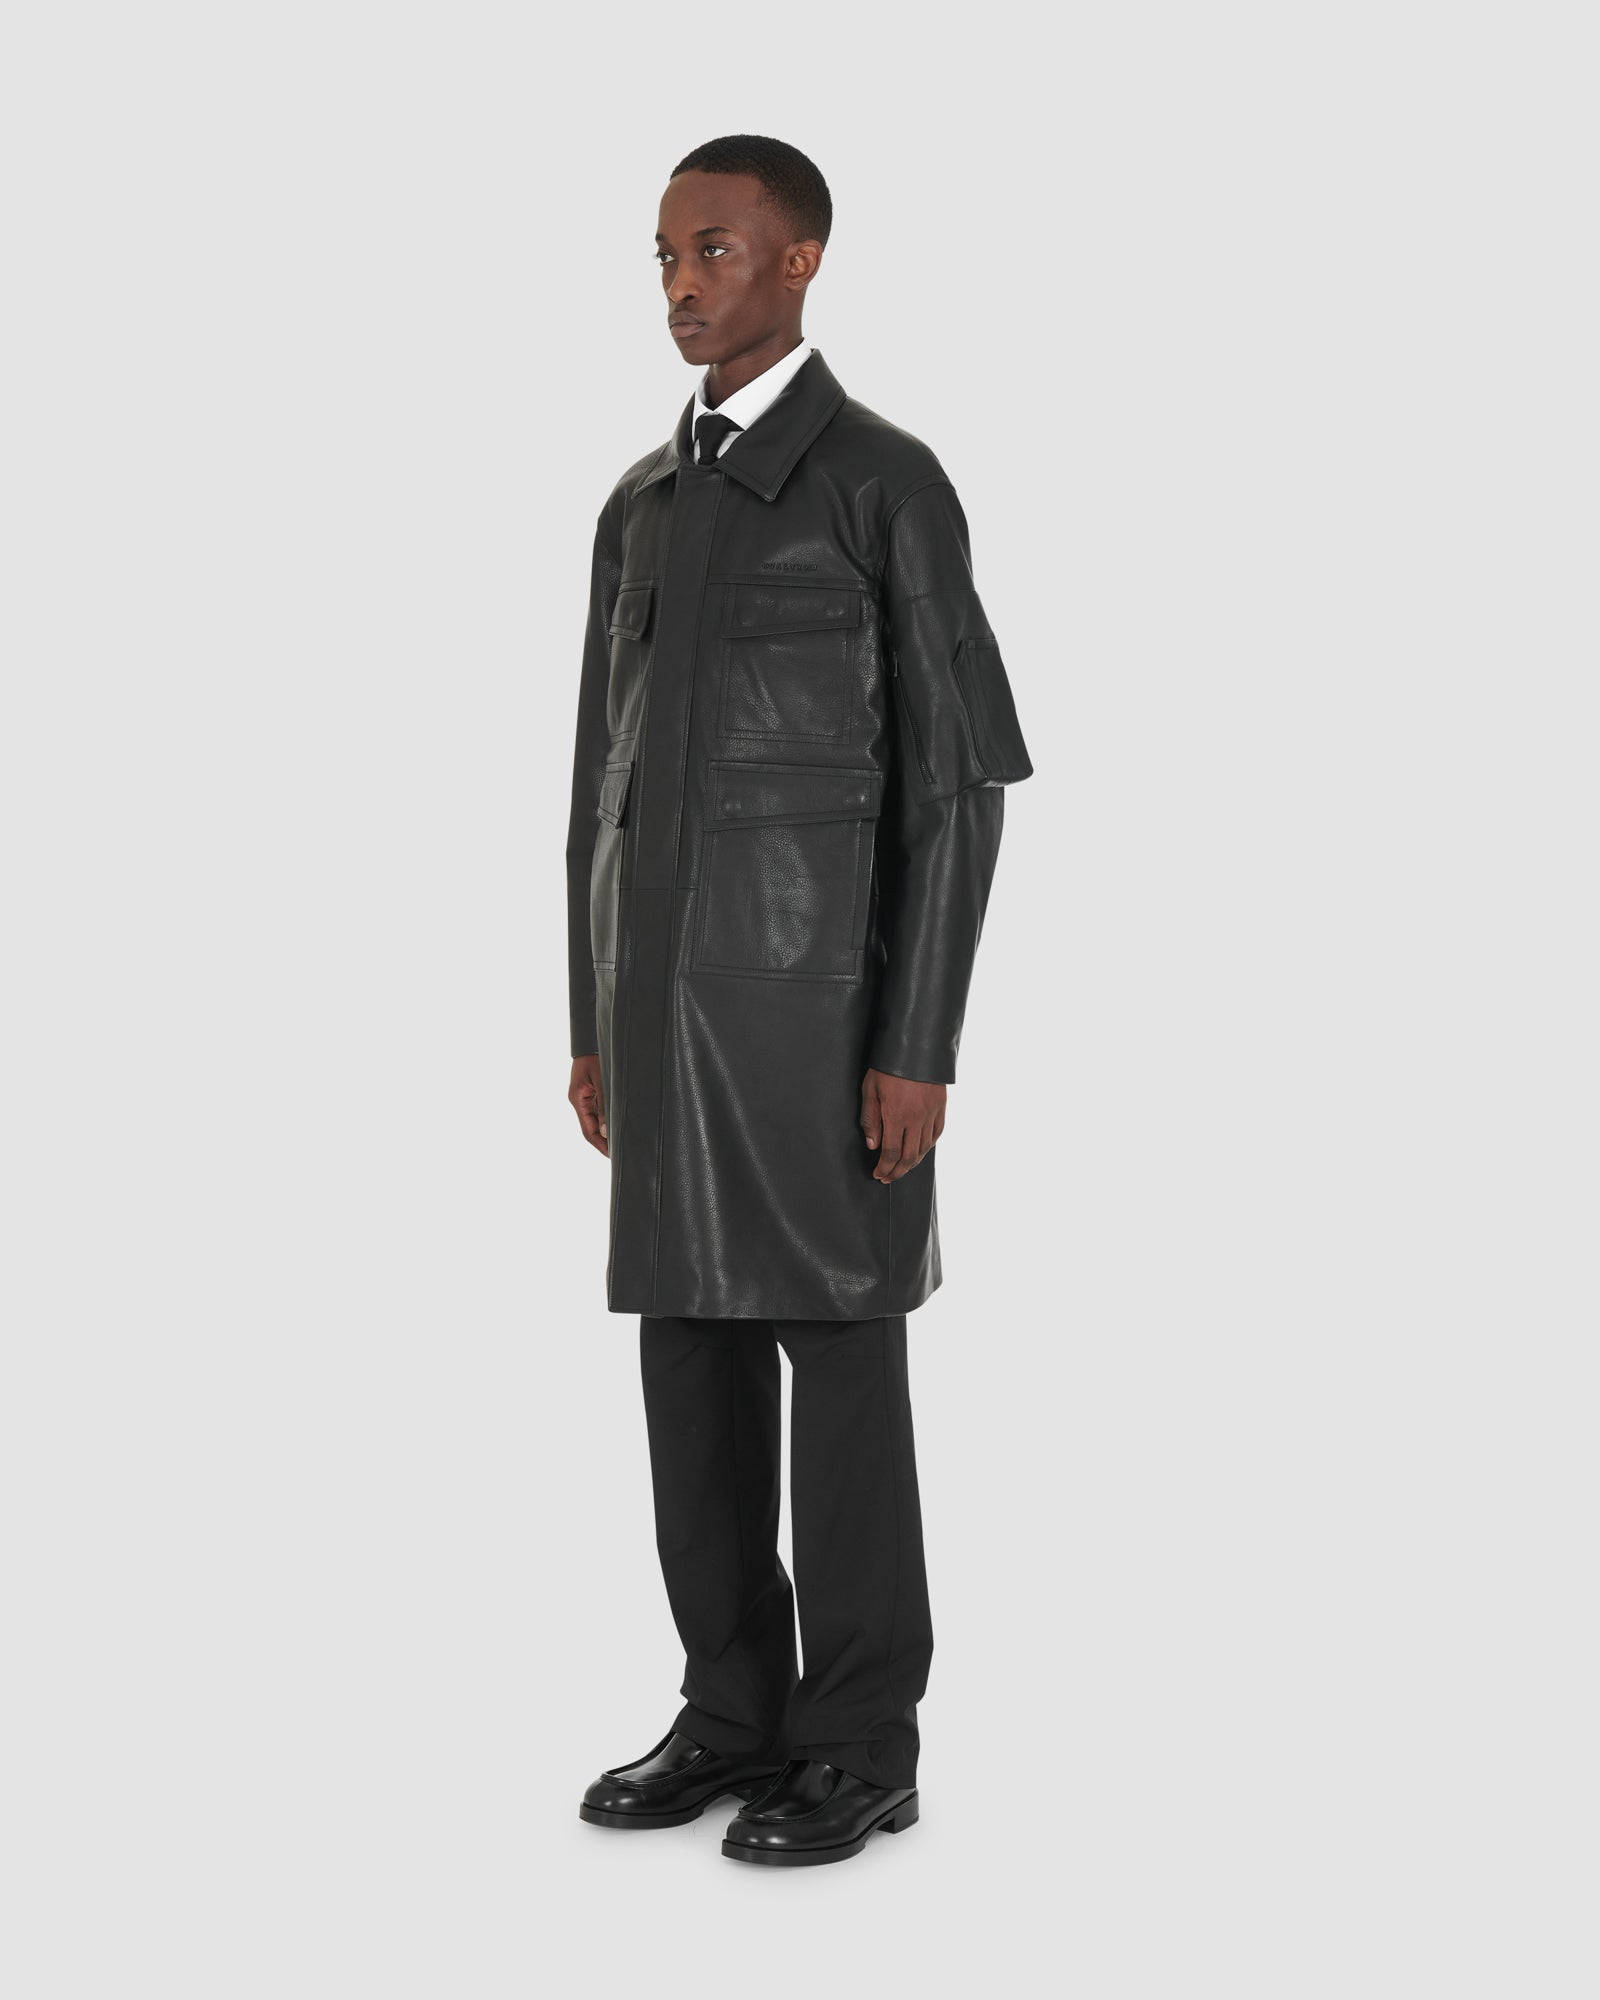 1017 ALYX 9SM | LEATHER POLICE COAT RUNWAY MADE TO ORDER | Outerwear | F20, FW20 PRE-ORDER